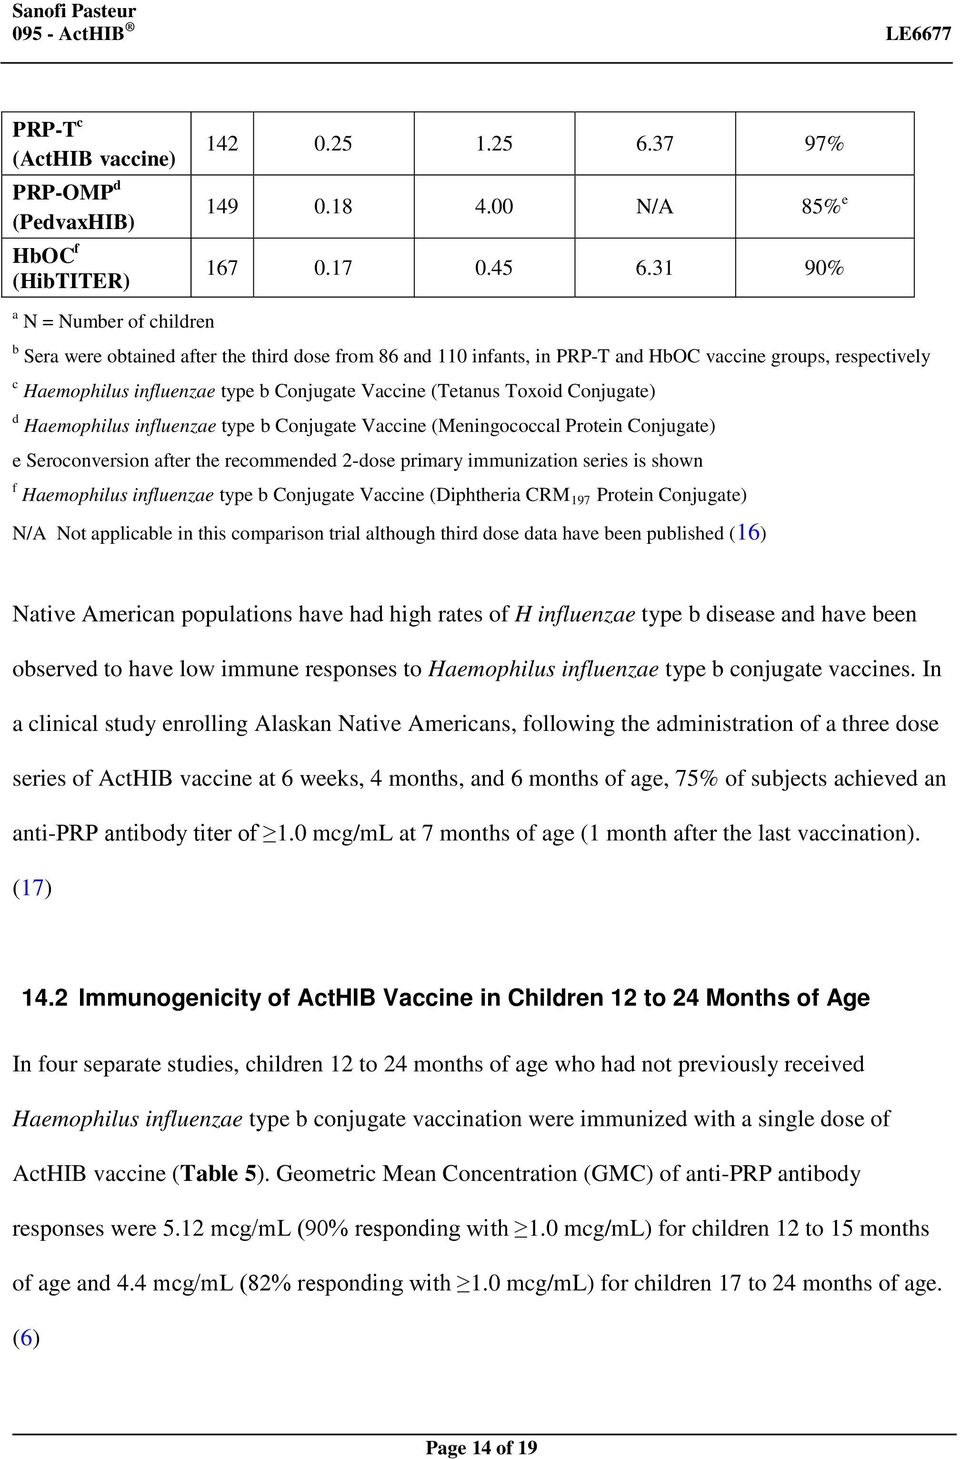 (Tetanus Toxoid Conjugate) d Haemophilus influenzae type b Conjugate Vaccine (Meningococcal Protein Conjugate) e Seroconversion after the recommended 2-dose primary immunization series is shown f